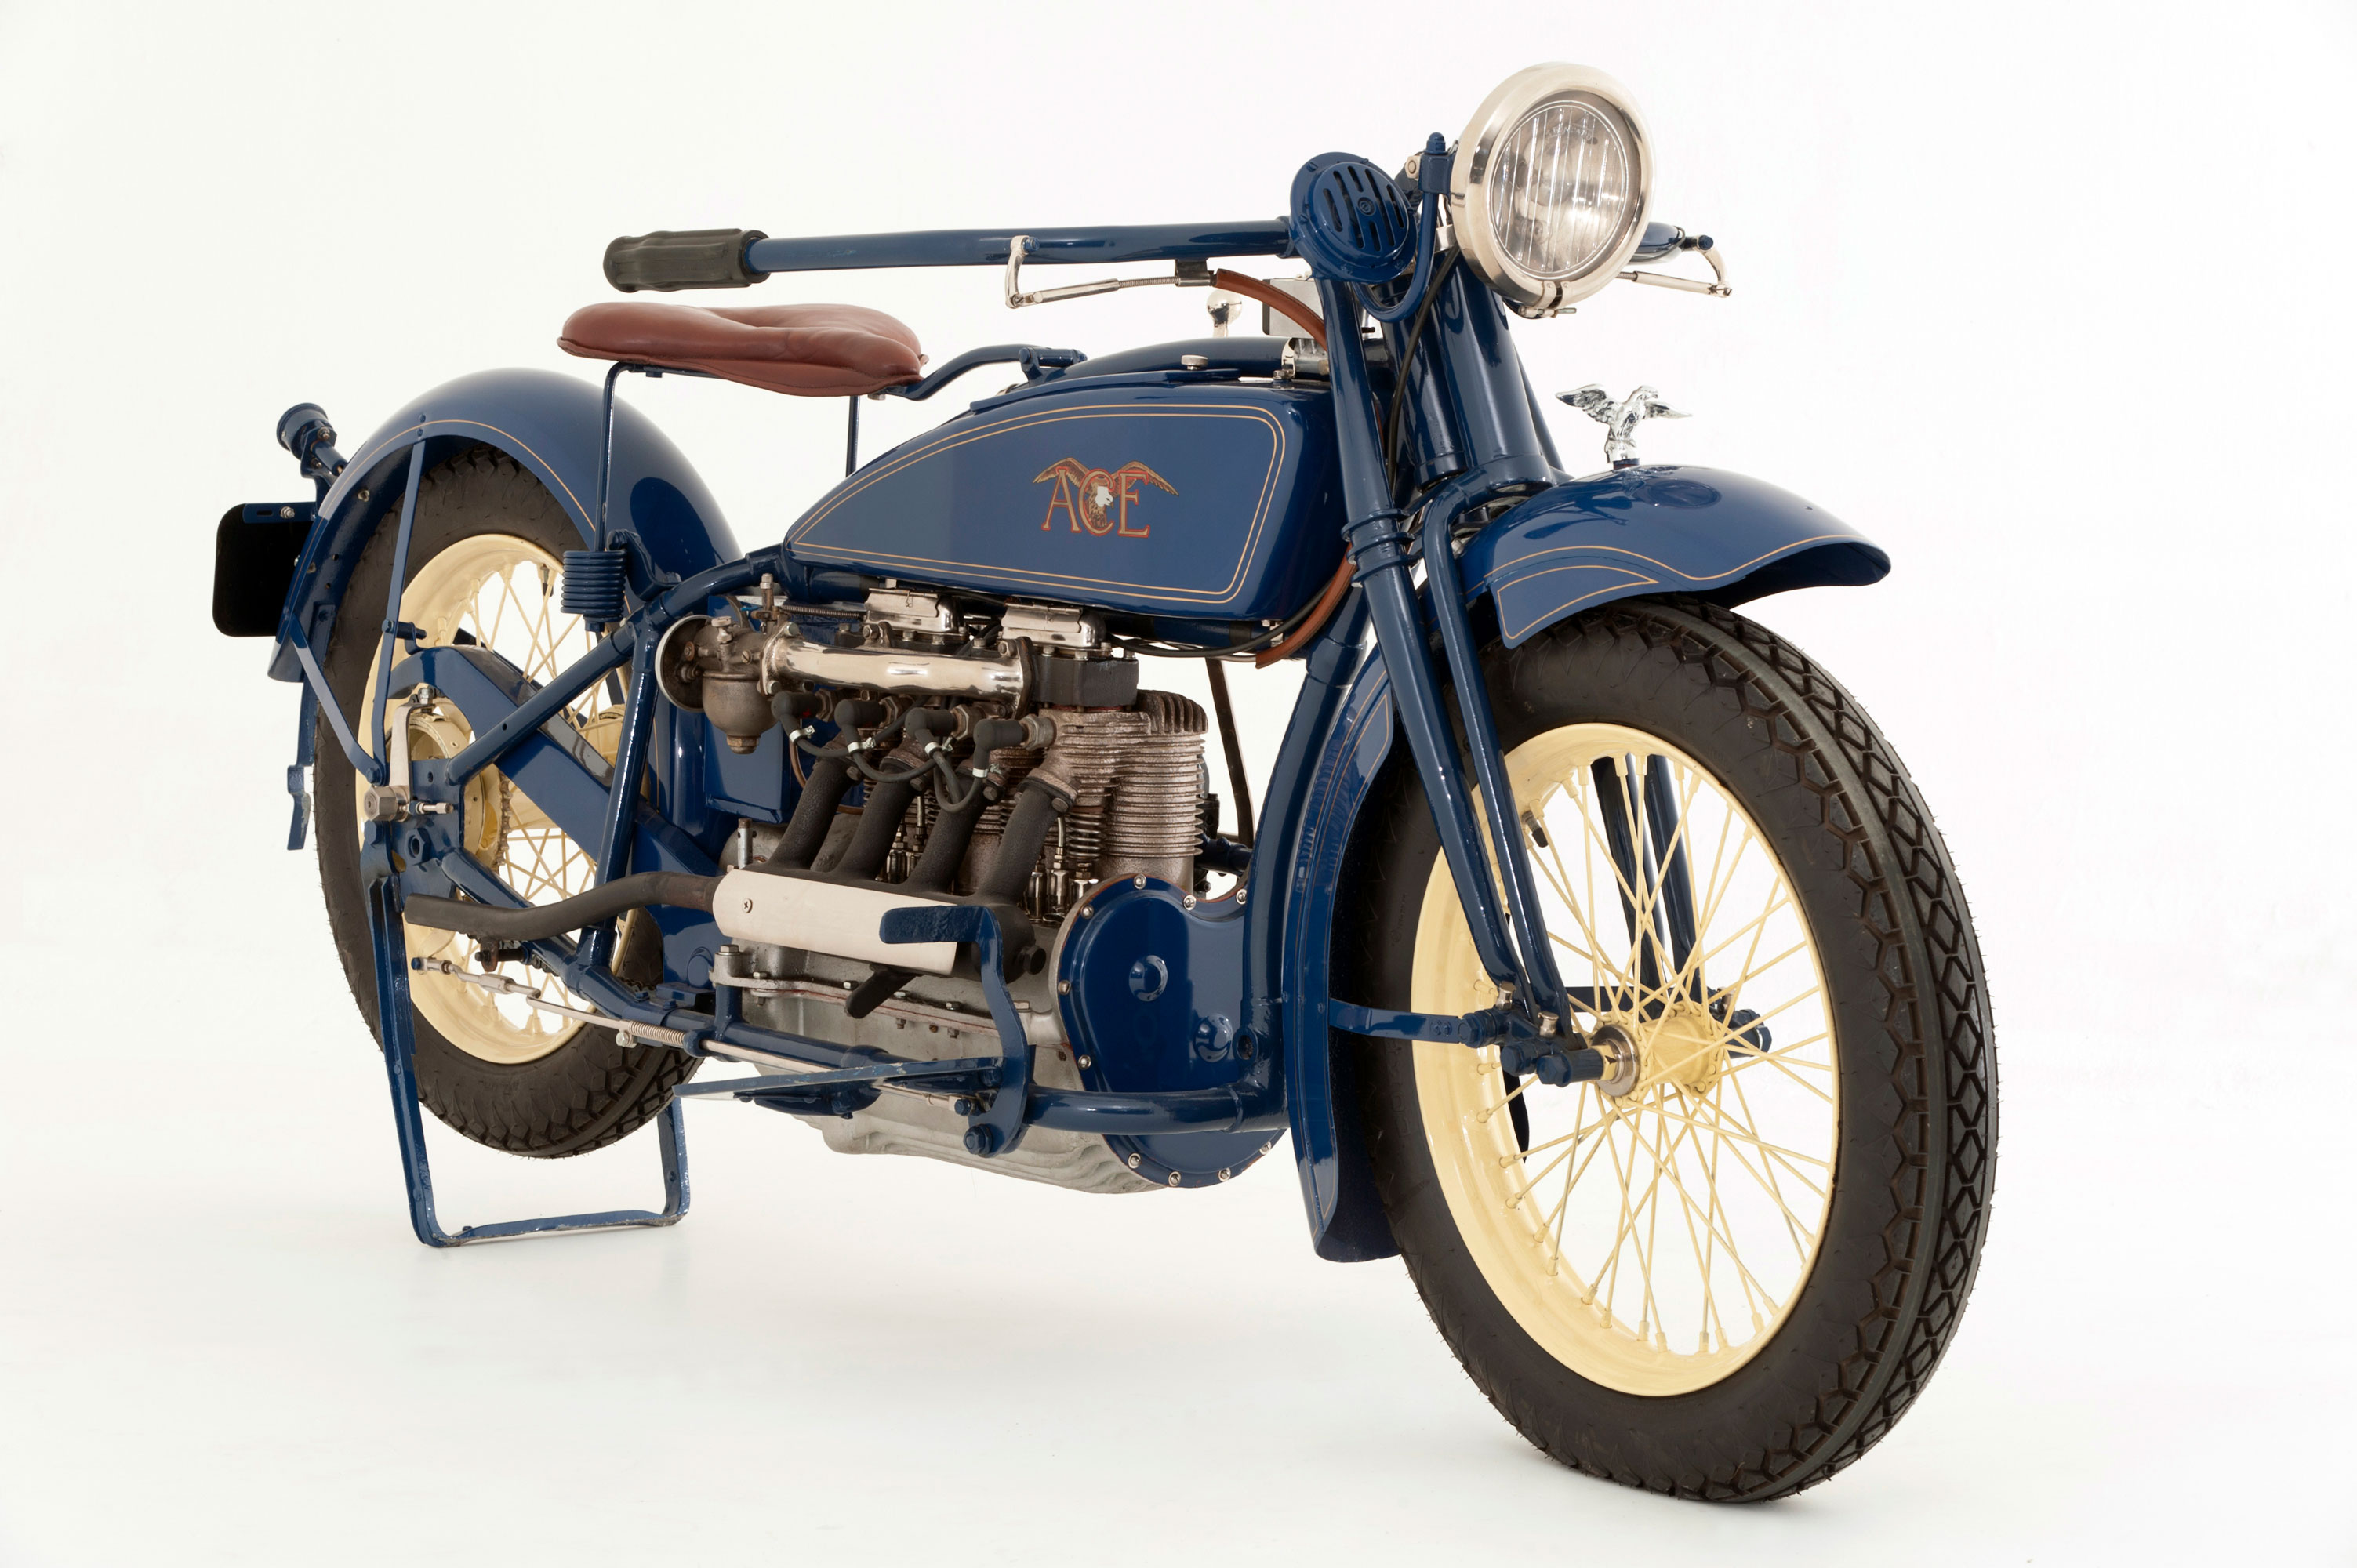 A 1923 Ace vintage motorcycle